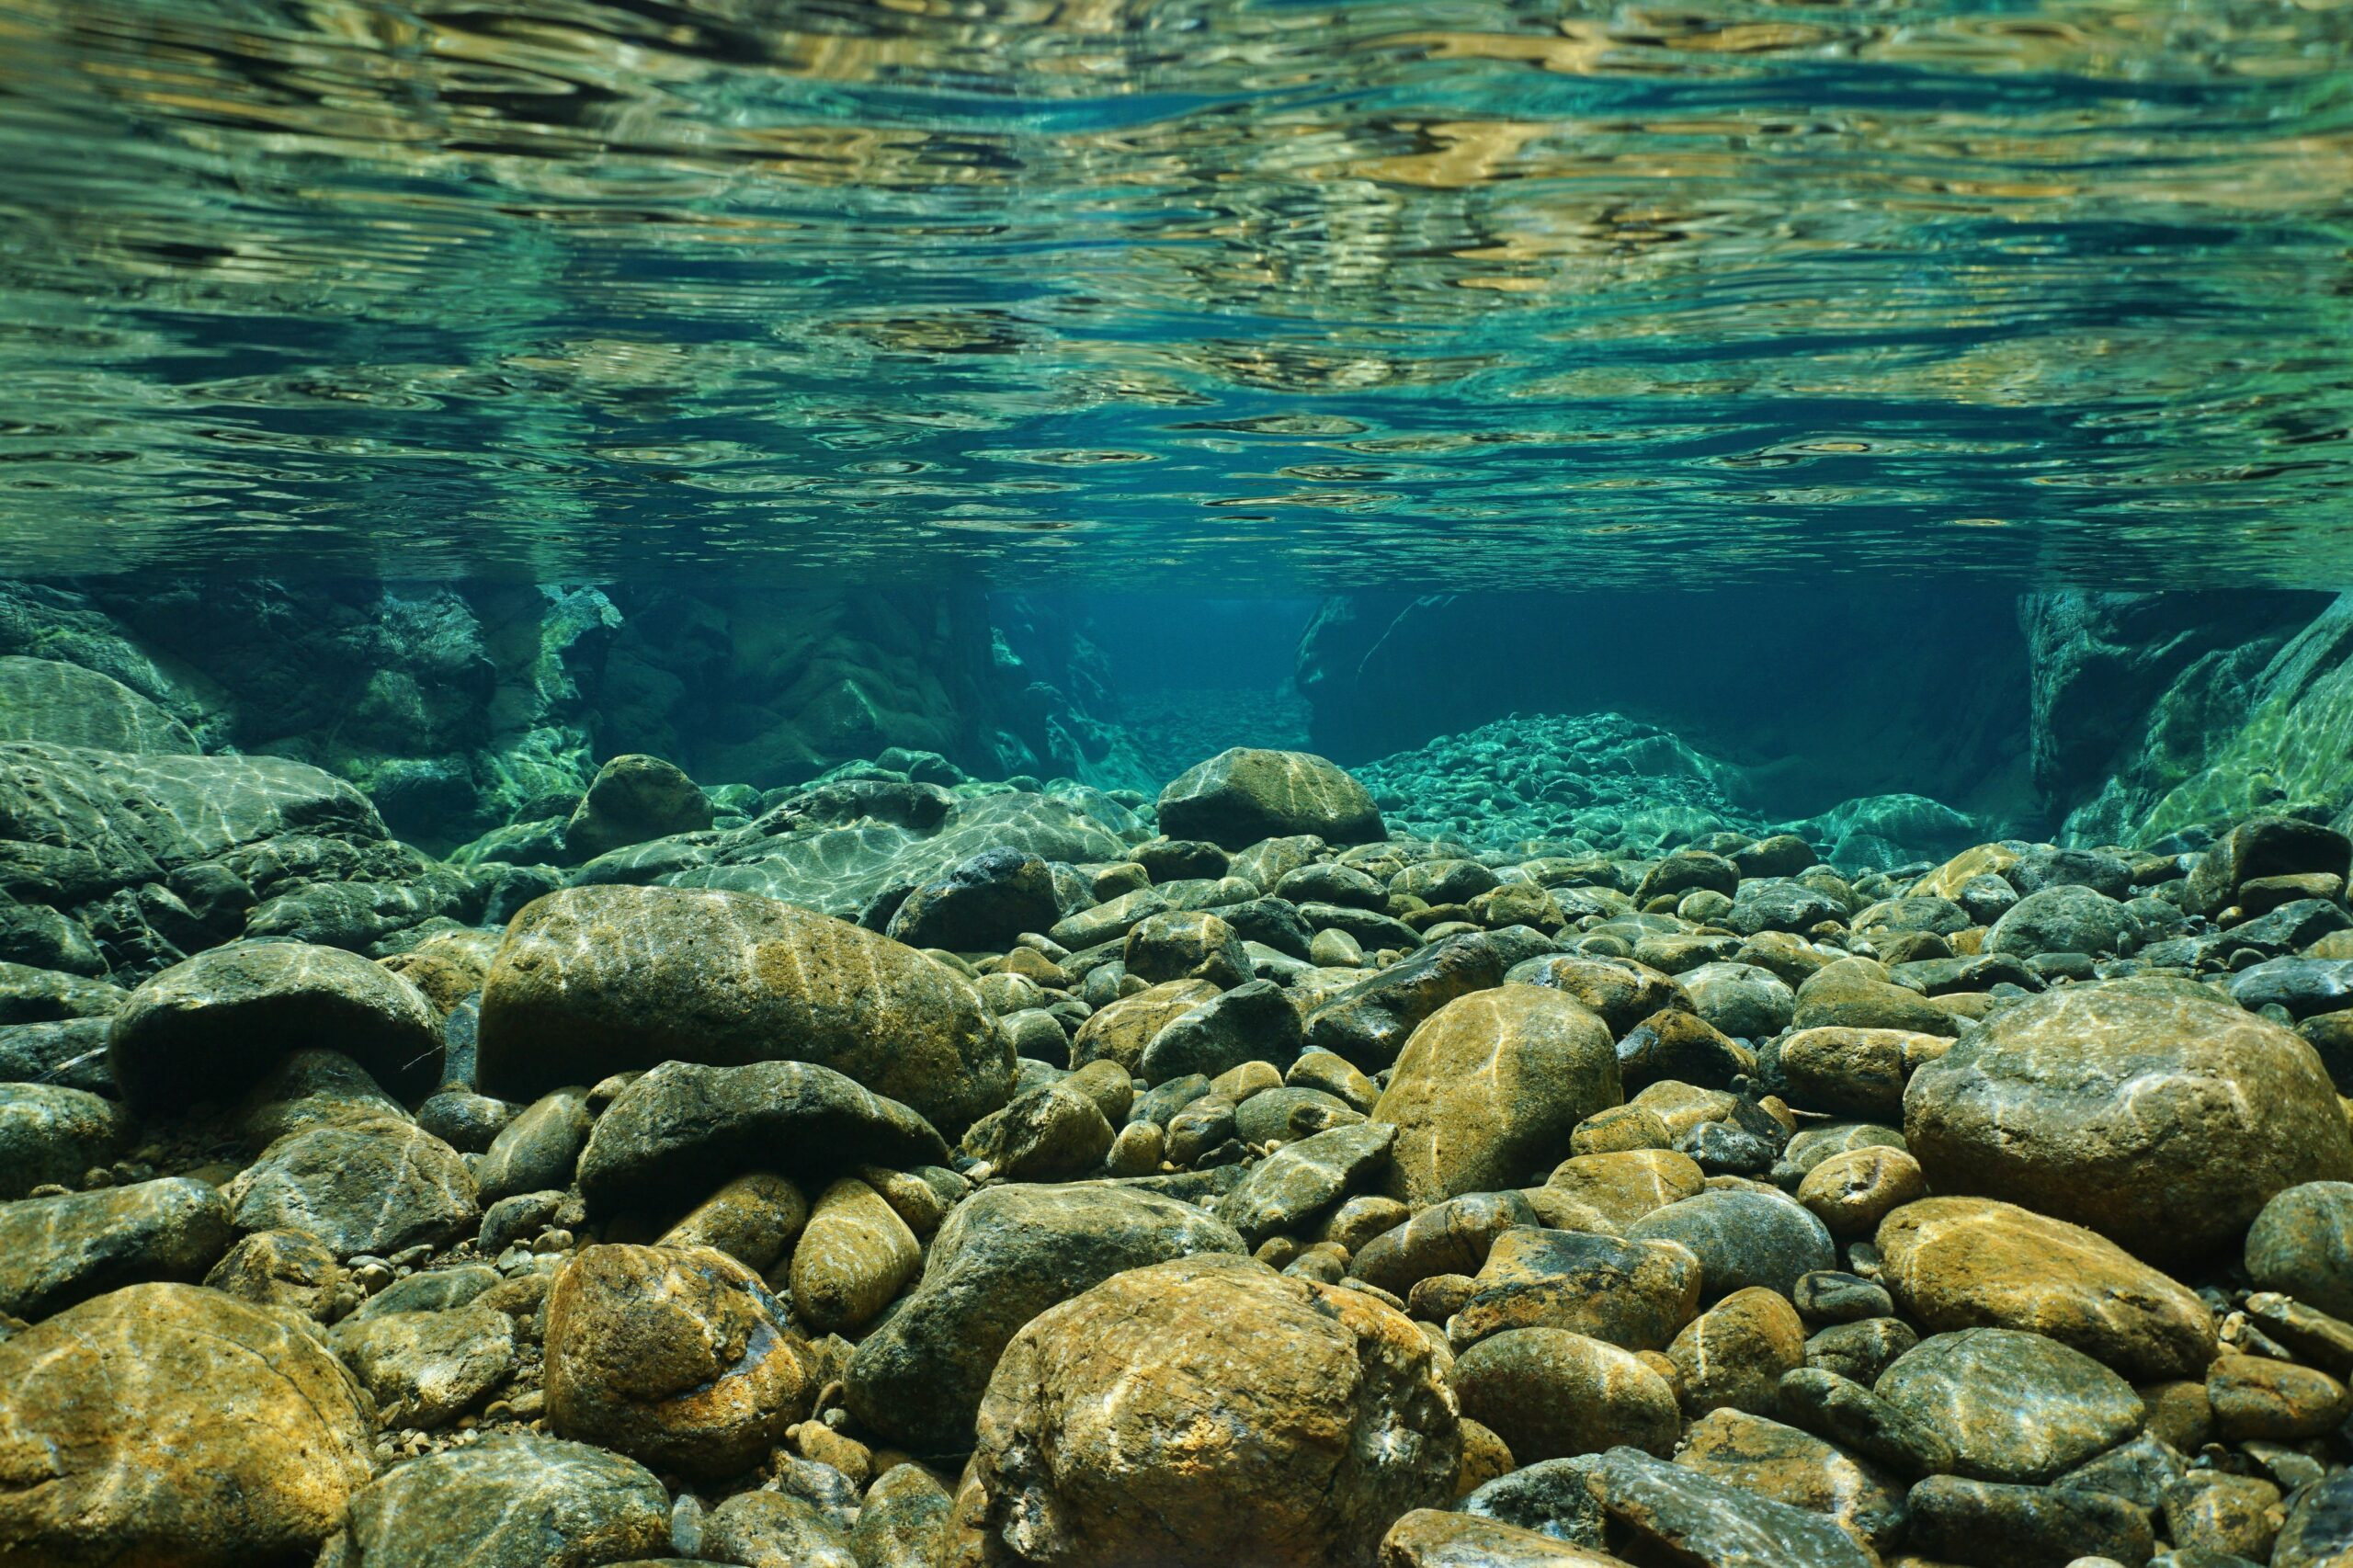 Water is not created or destroyed but instead cycled through a finite system.